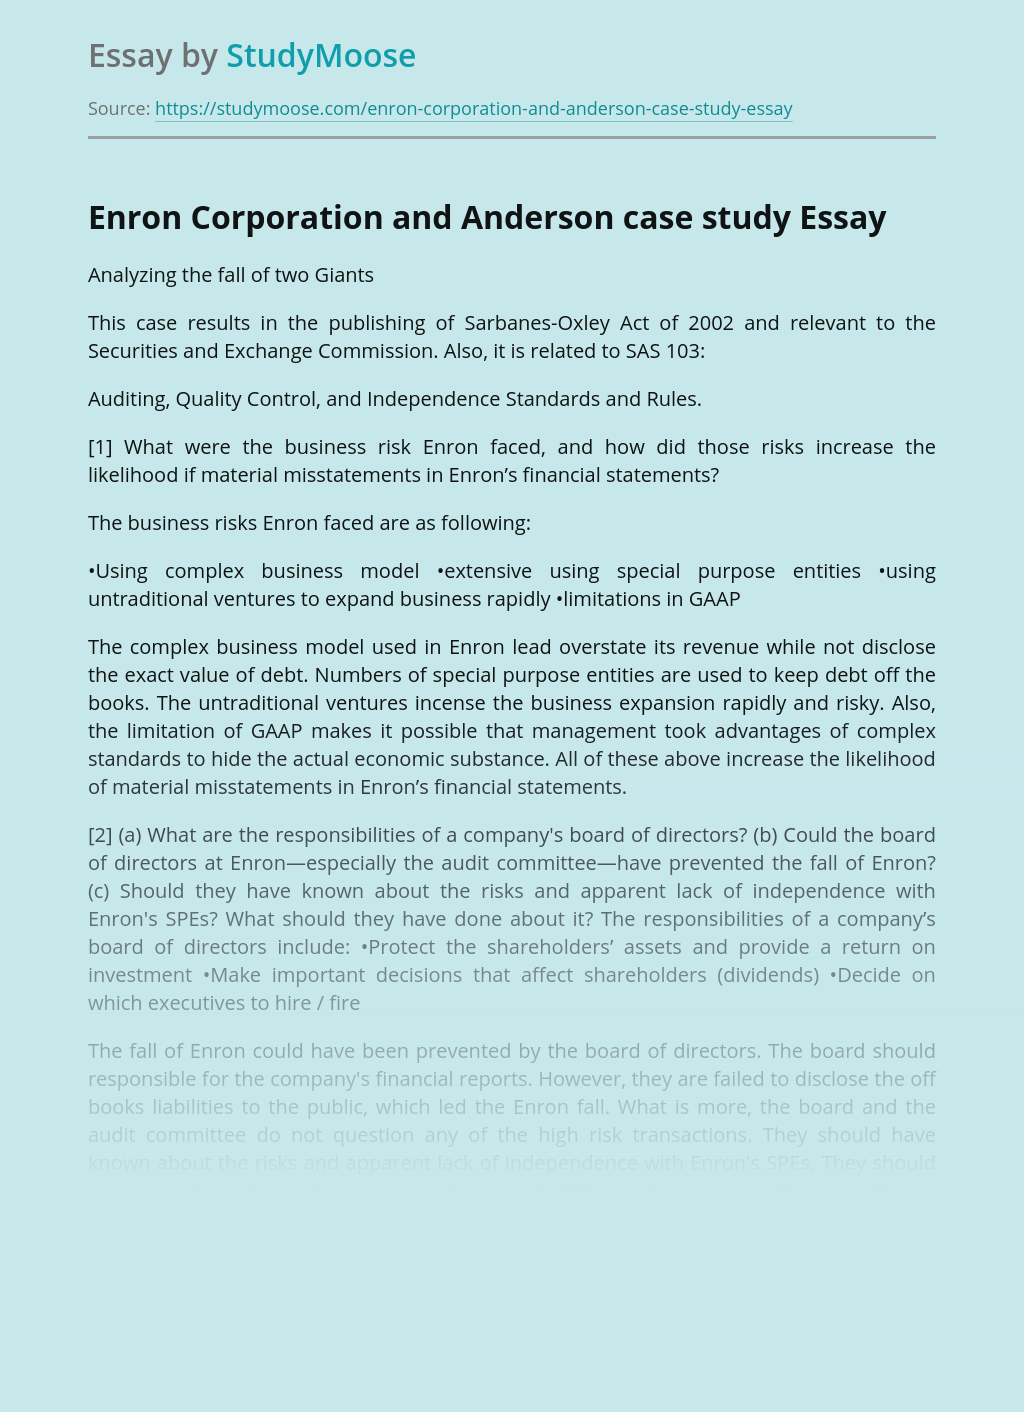 Enron Corporation and Anderson case study